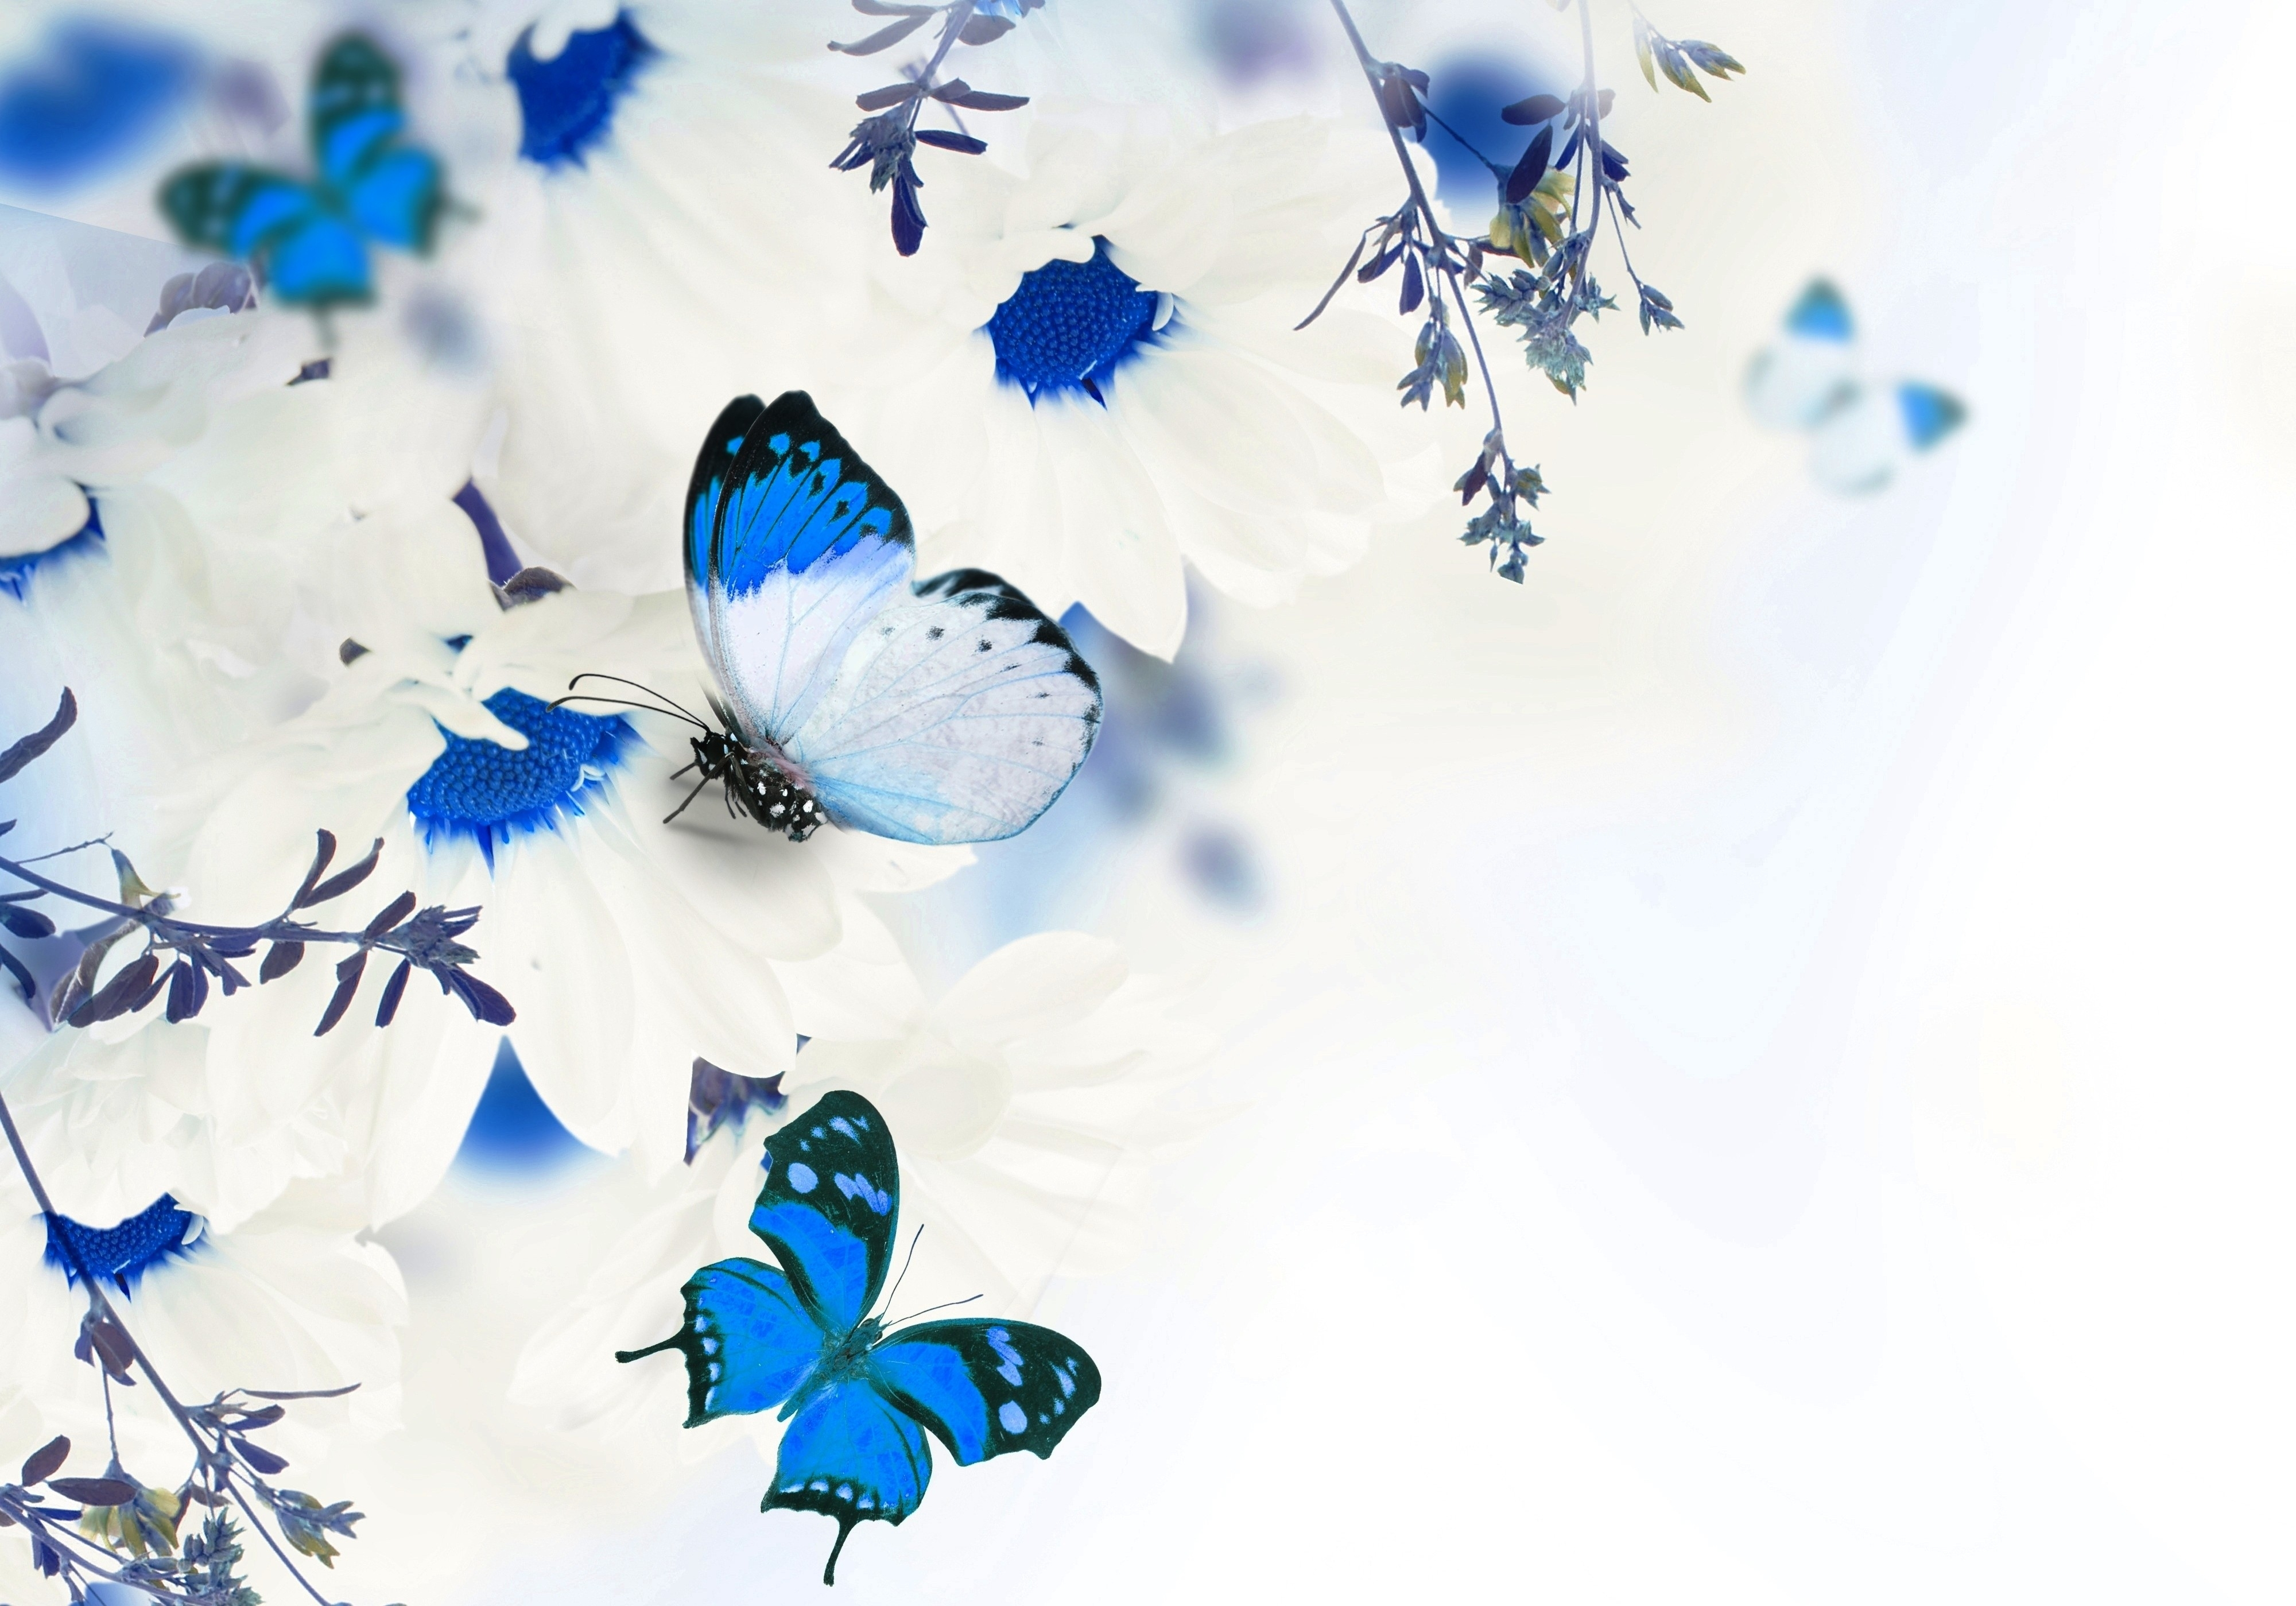 The Most Beautiful Blue Butterfly On Flower Wallpaper - Blue Butterflies And Flowers , HD Wallpaper & Backgrounds